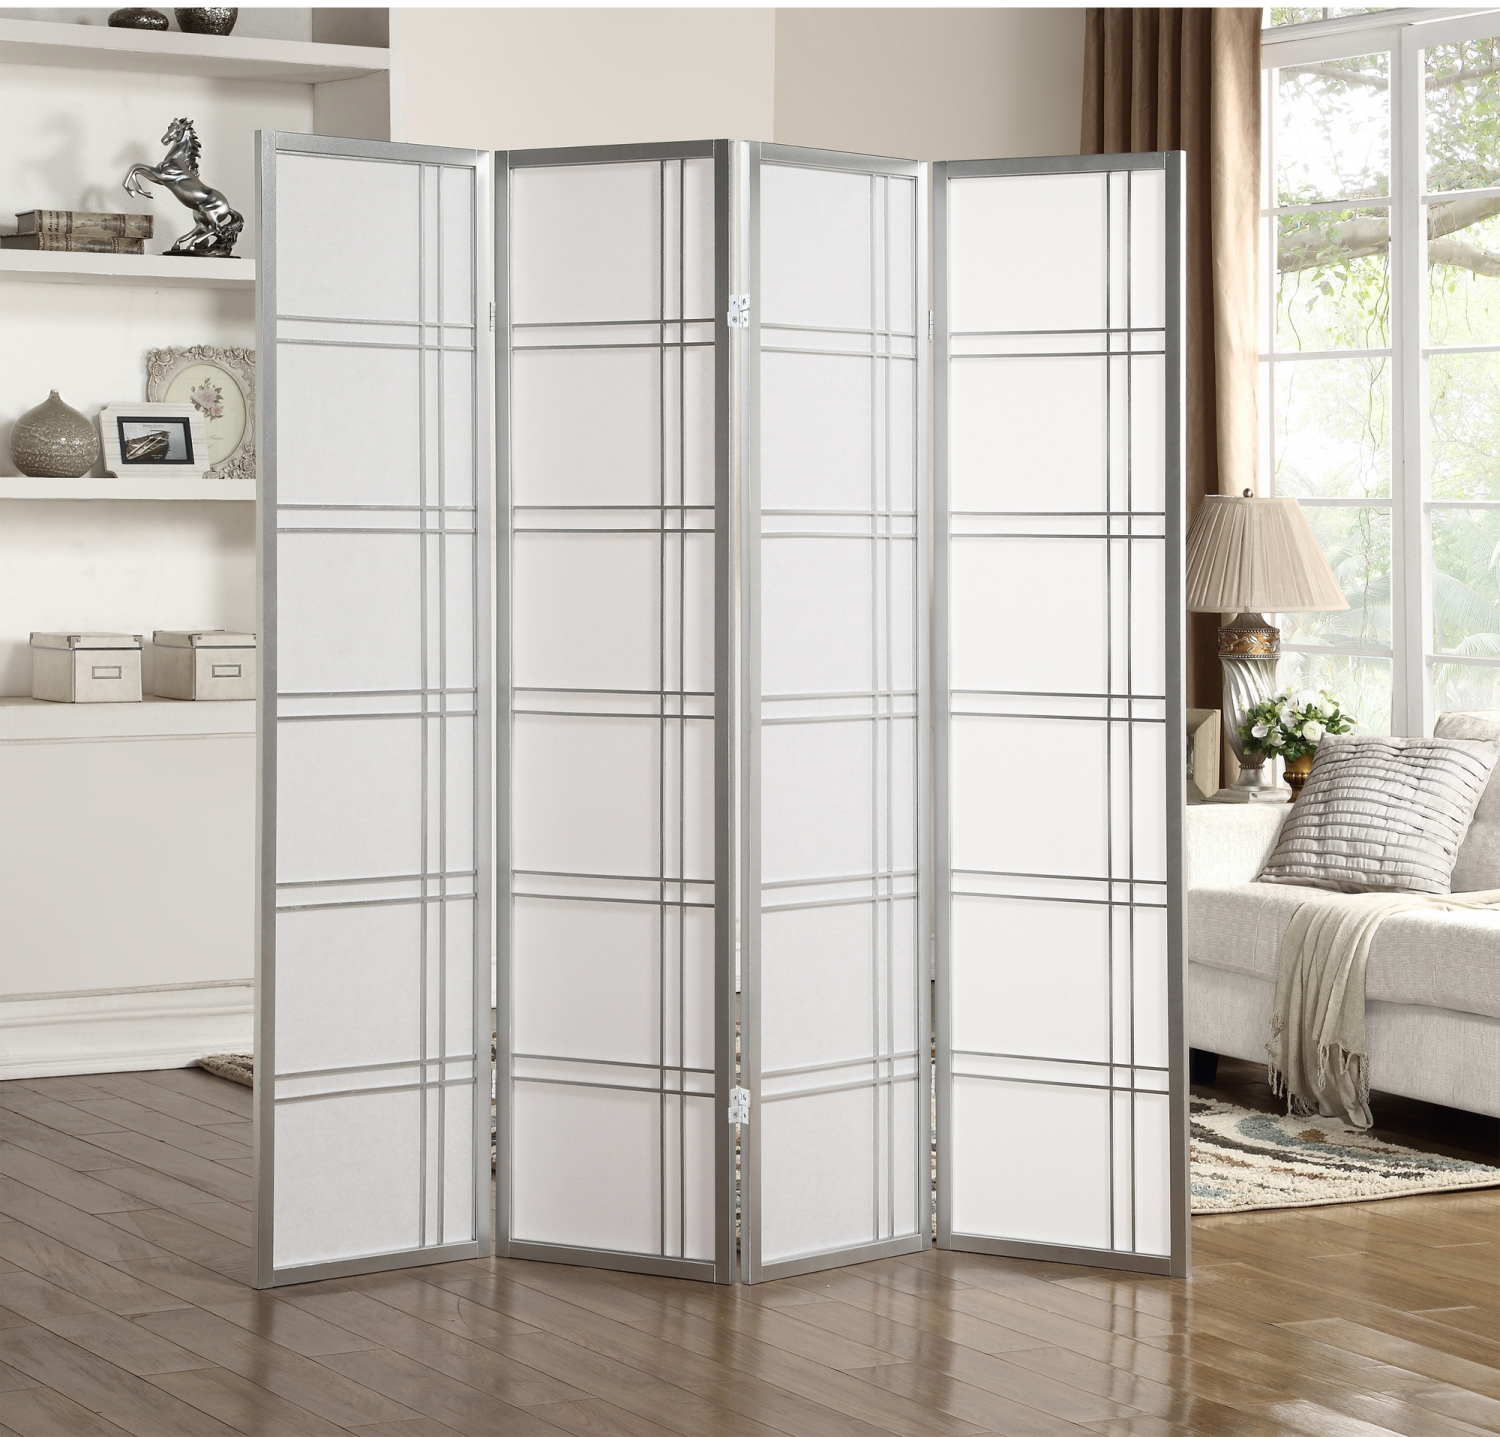 Details About Room Divider 4 Panel Screen Home Privacy Decorative Folding Wood Frame Parion